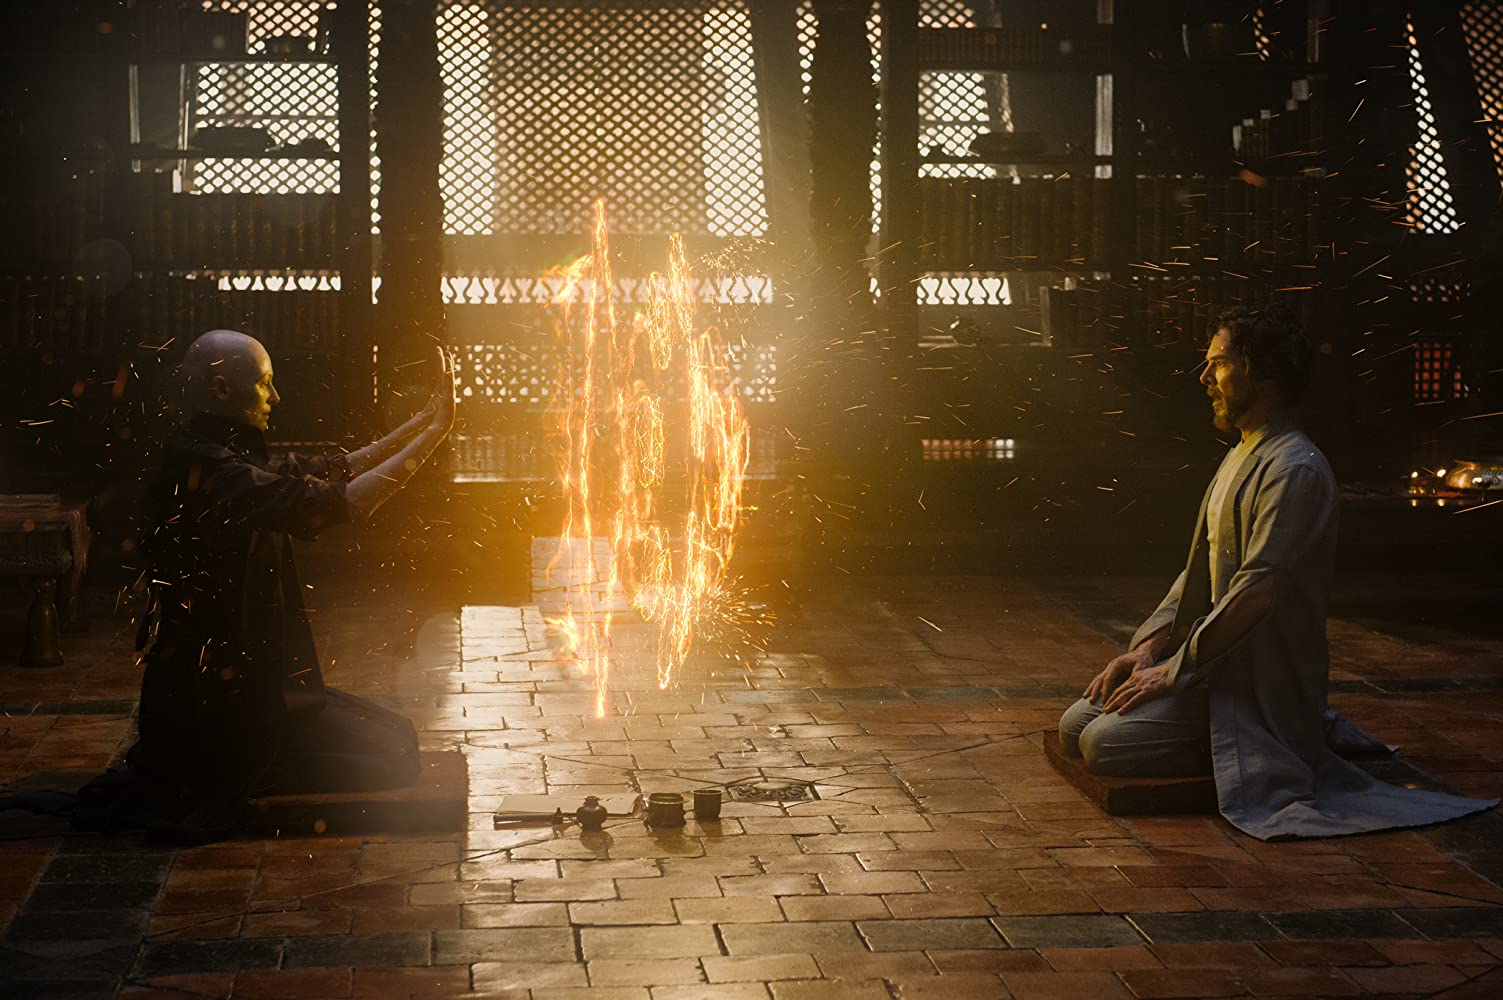 Tilda Swinton and Benedict Cumberbatch in Doctor Strange (2016)